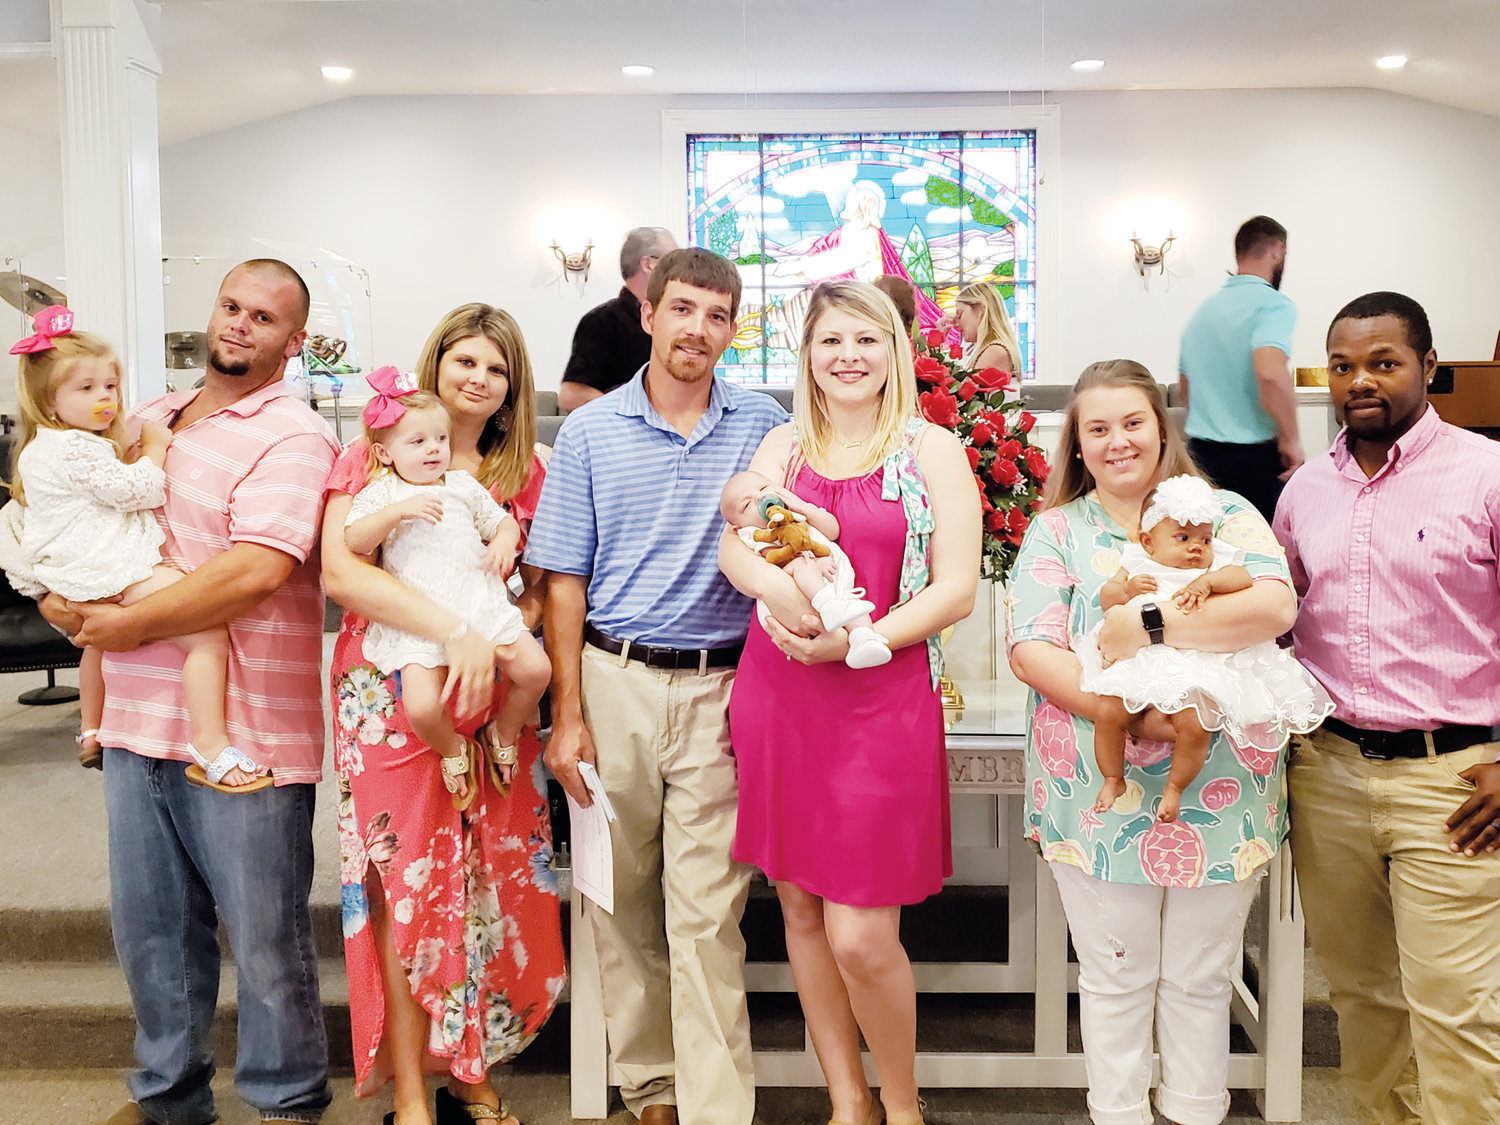 Pictured from left are Brylee Trace and Brynlee Renee with their parents Johnathan and Brittany Barefoot; Colby Scott with parents Josh and Landon Miller; and Ryleigh Jade with parents Chris and Amber Price.